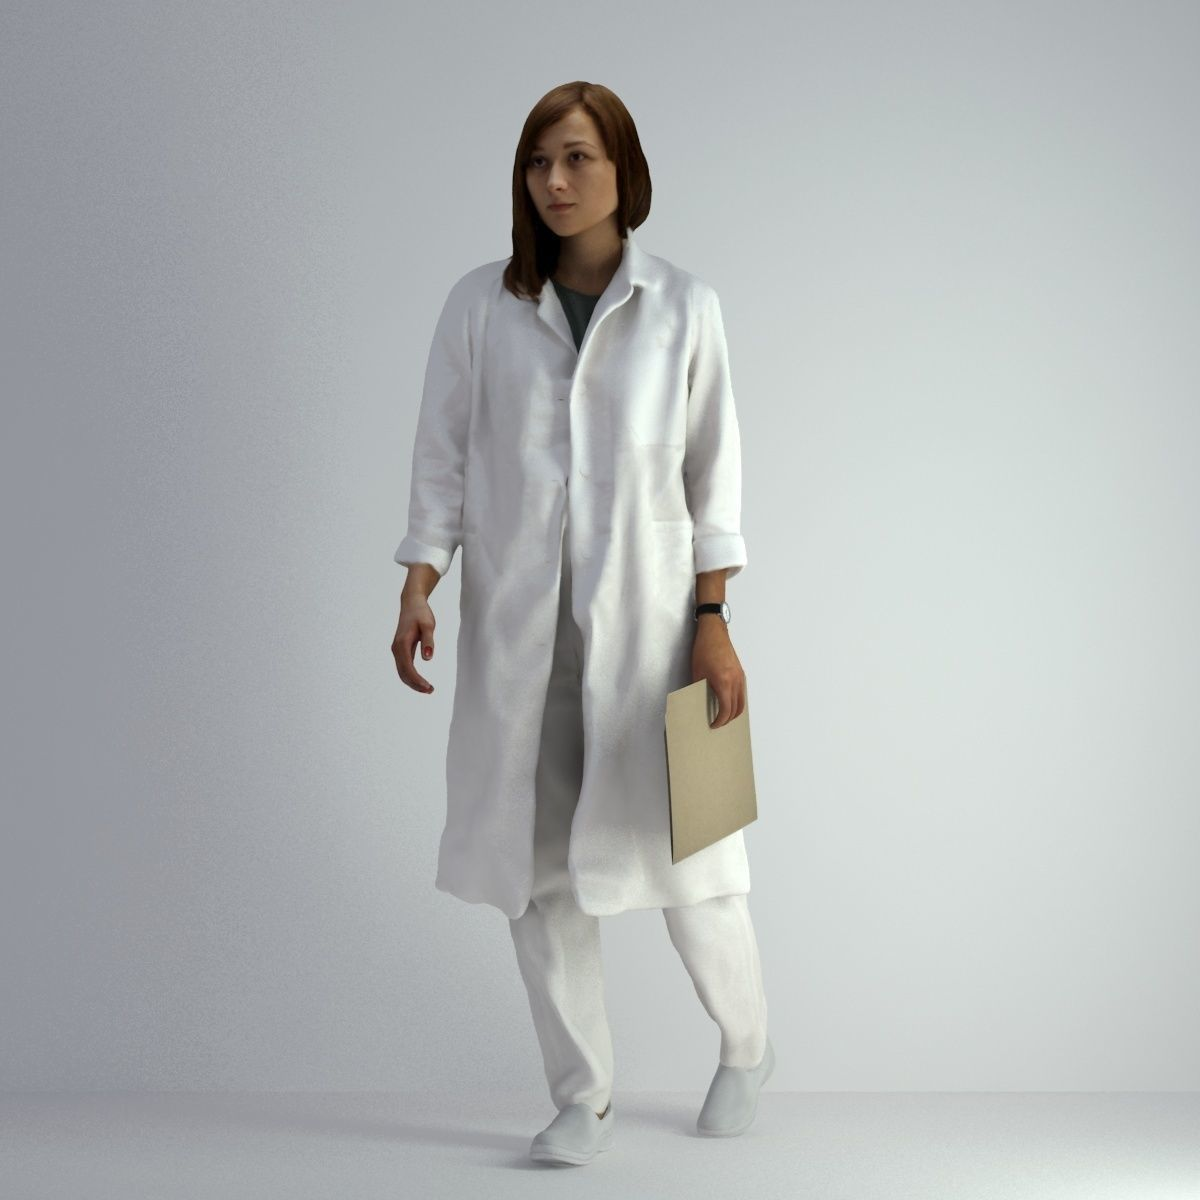 3D Scan Woman Doctor 007